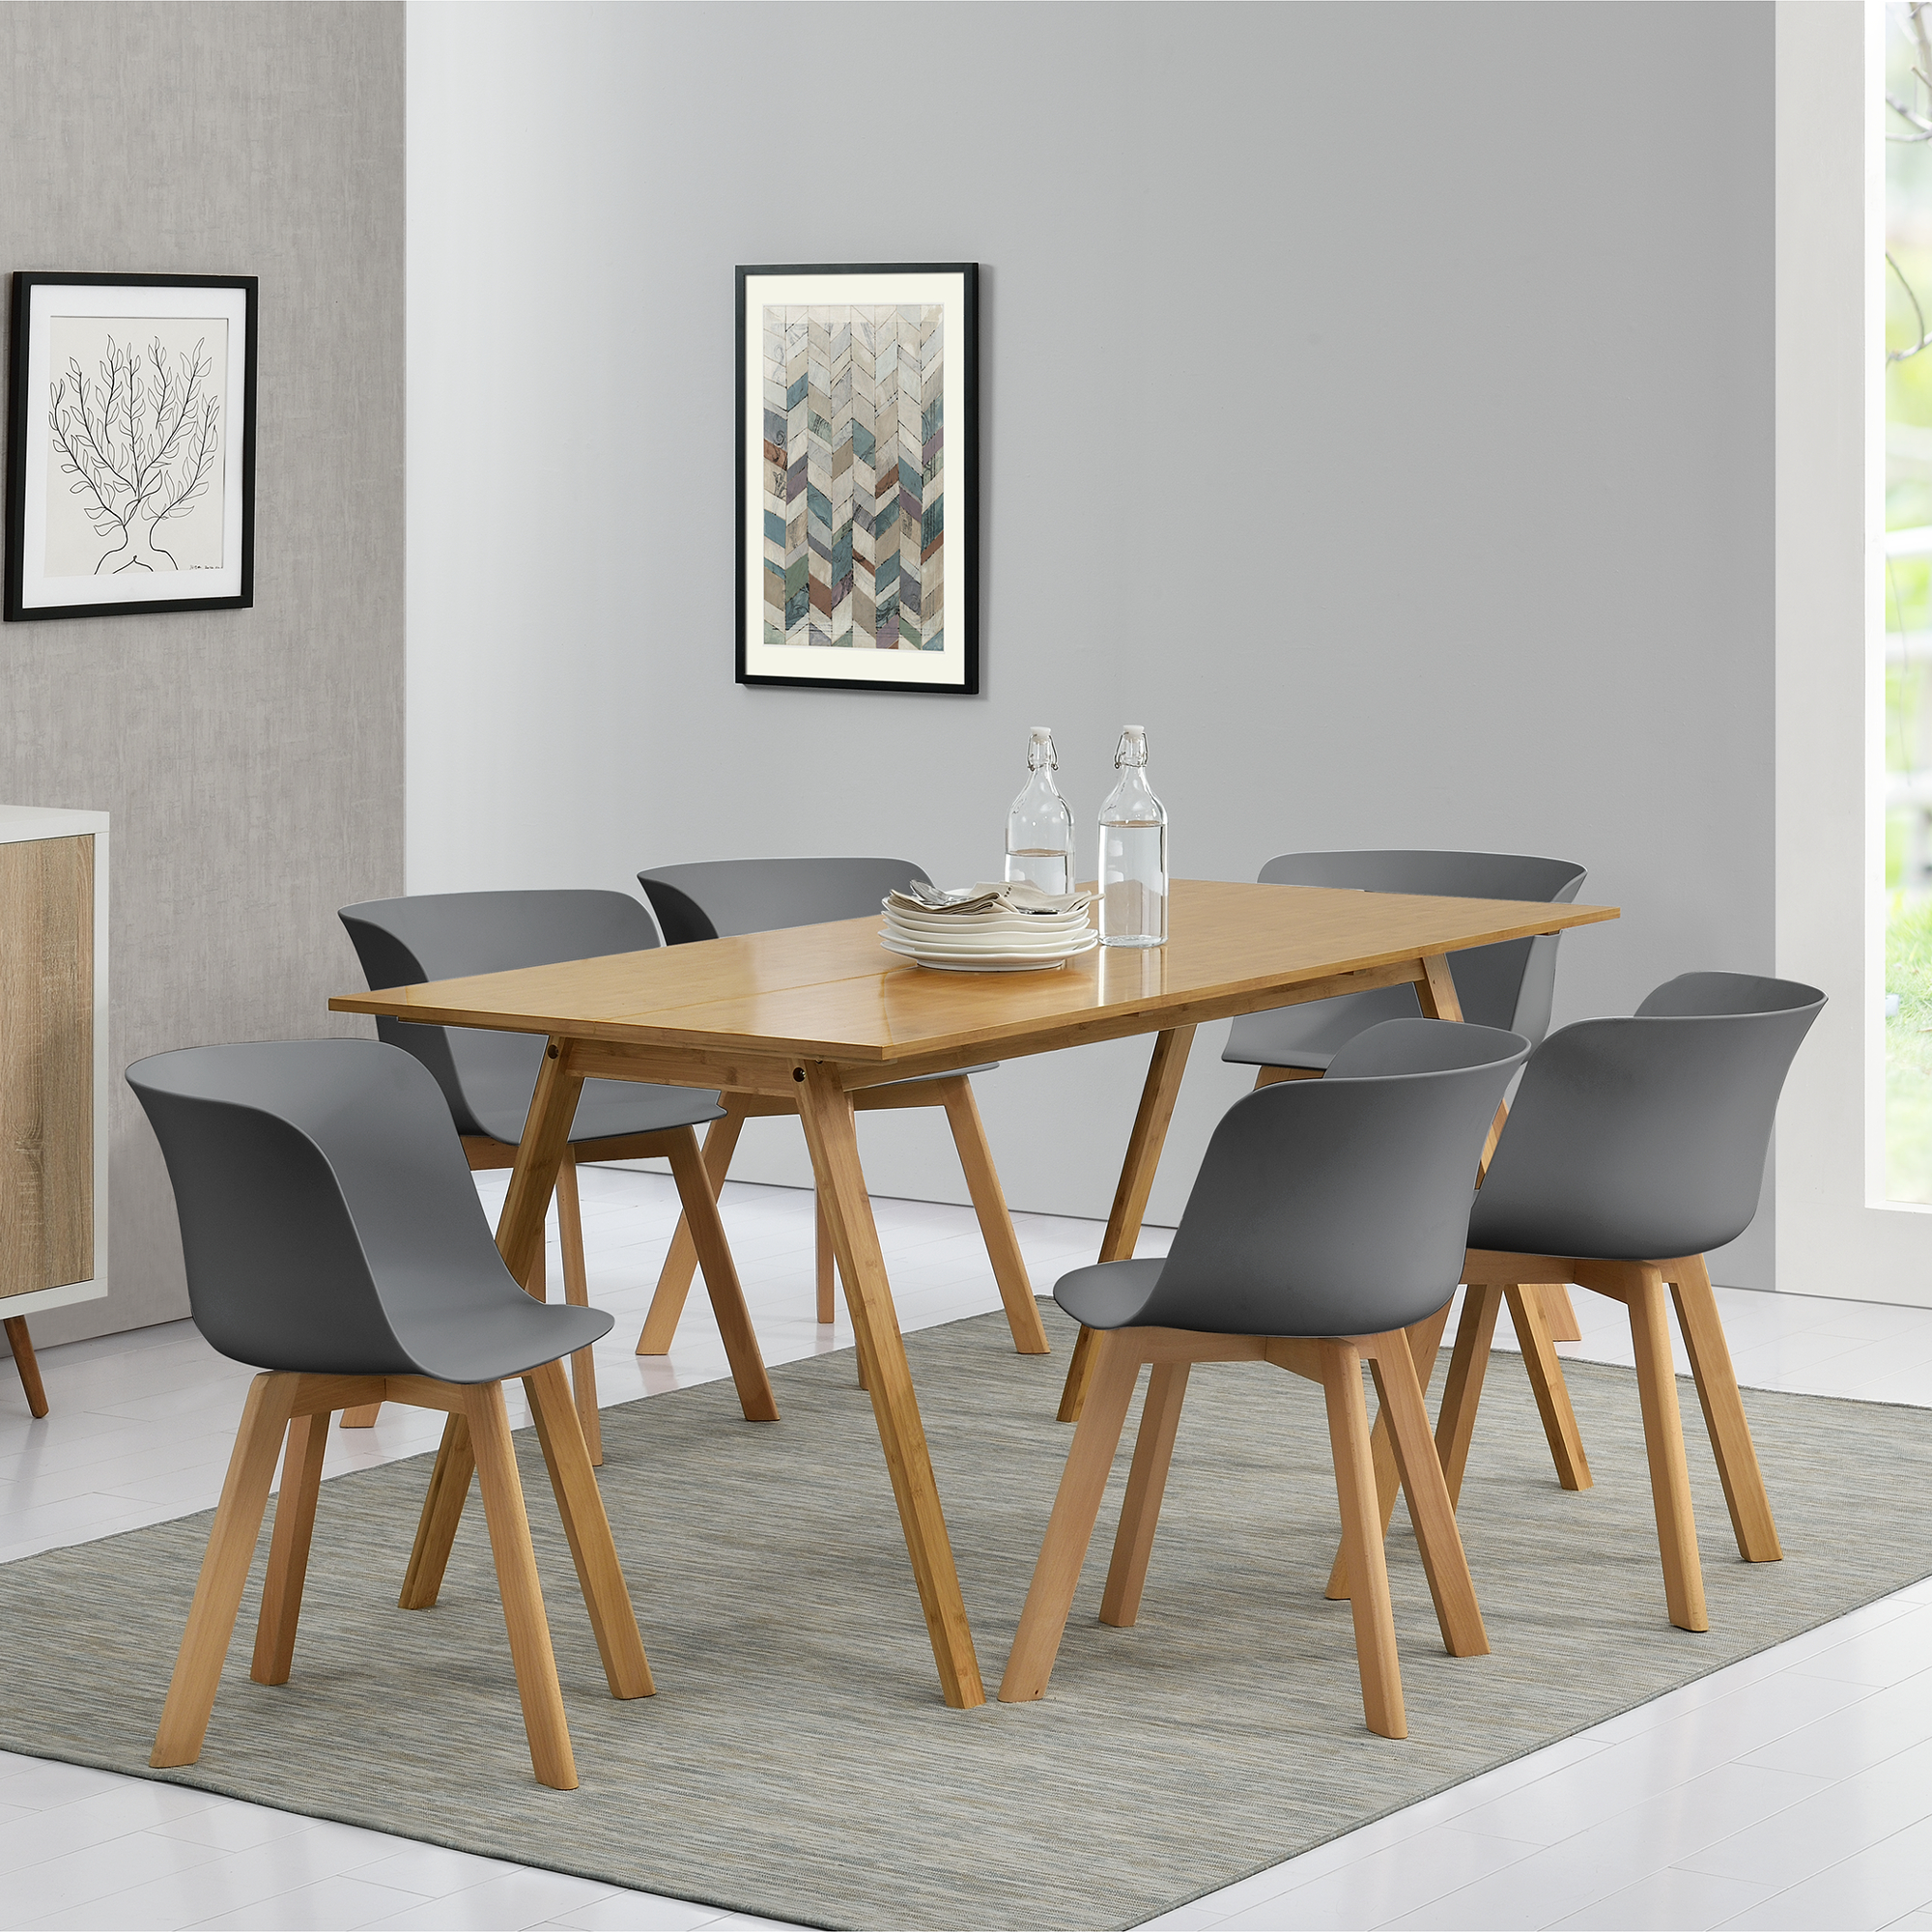 Table de salle manger mit 6 chaises bambou for Table de cuisine salle a manger 6 chaises ella